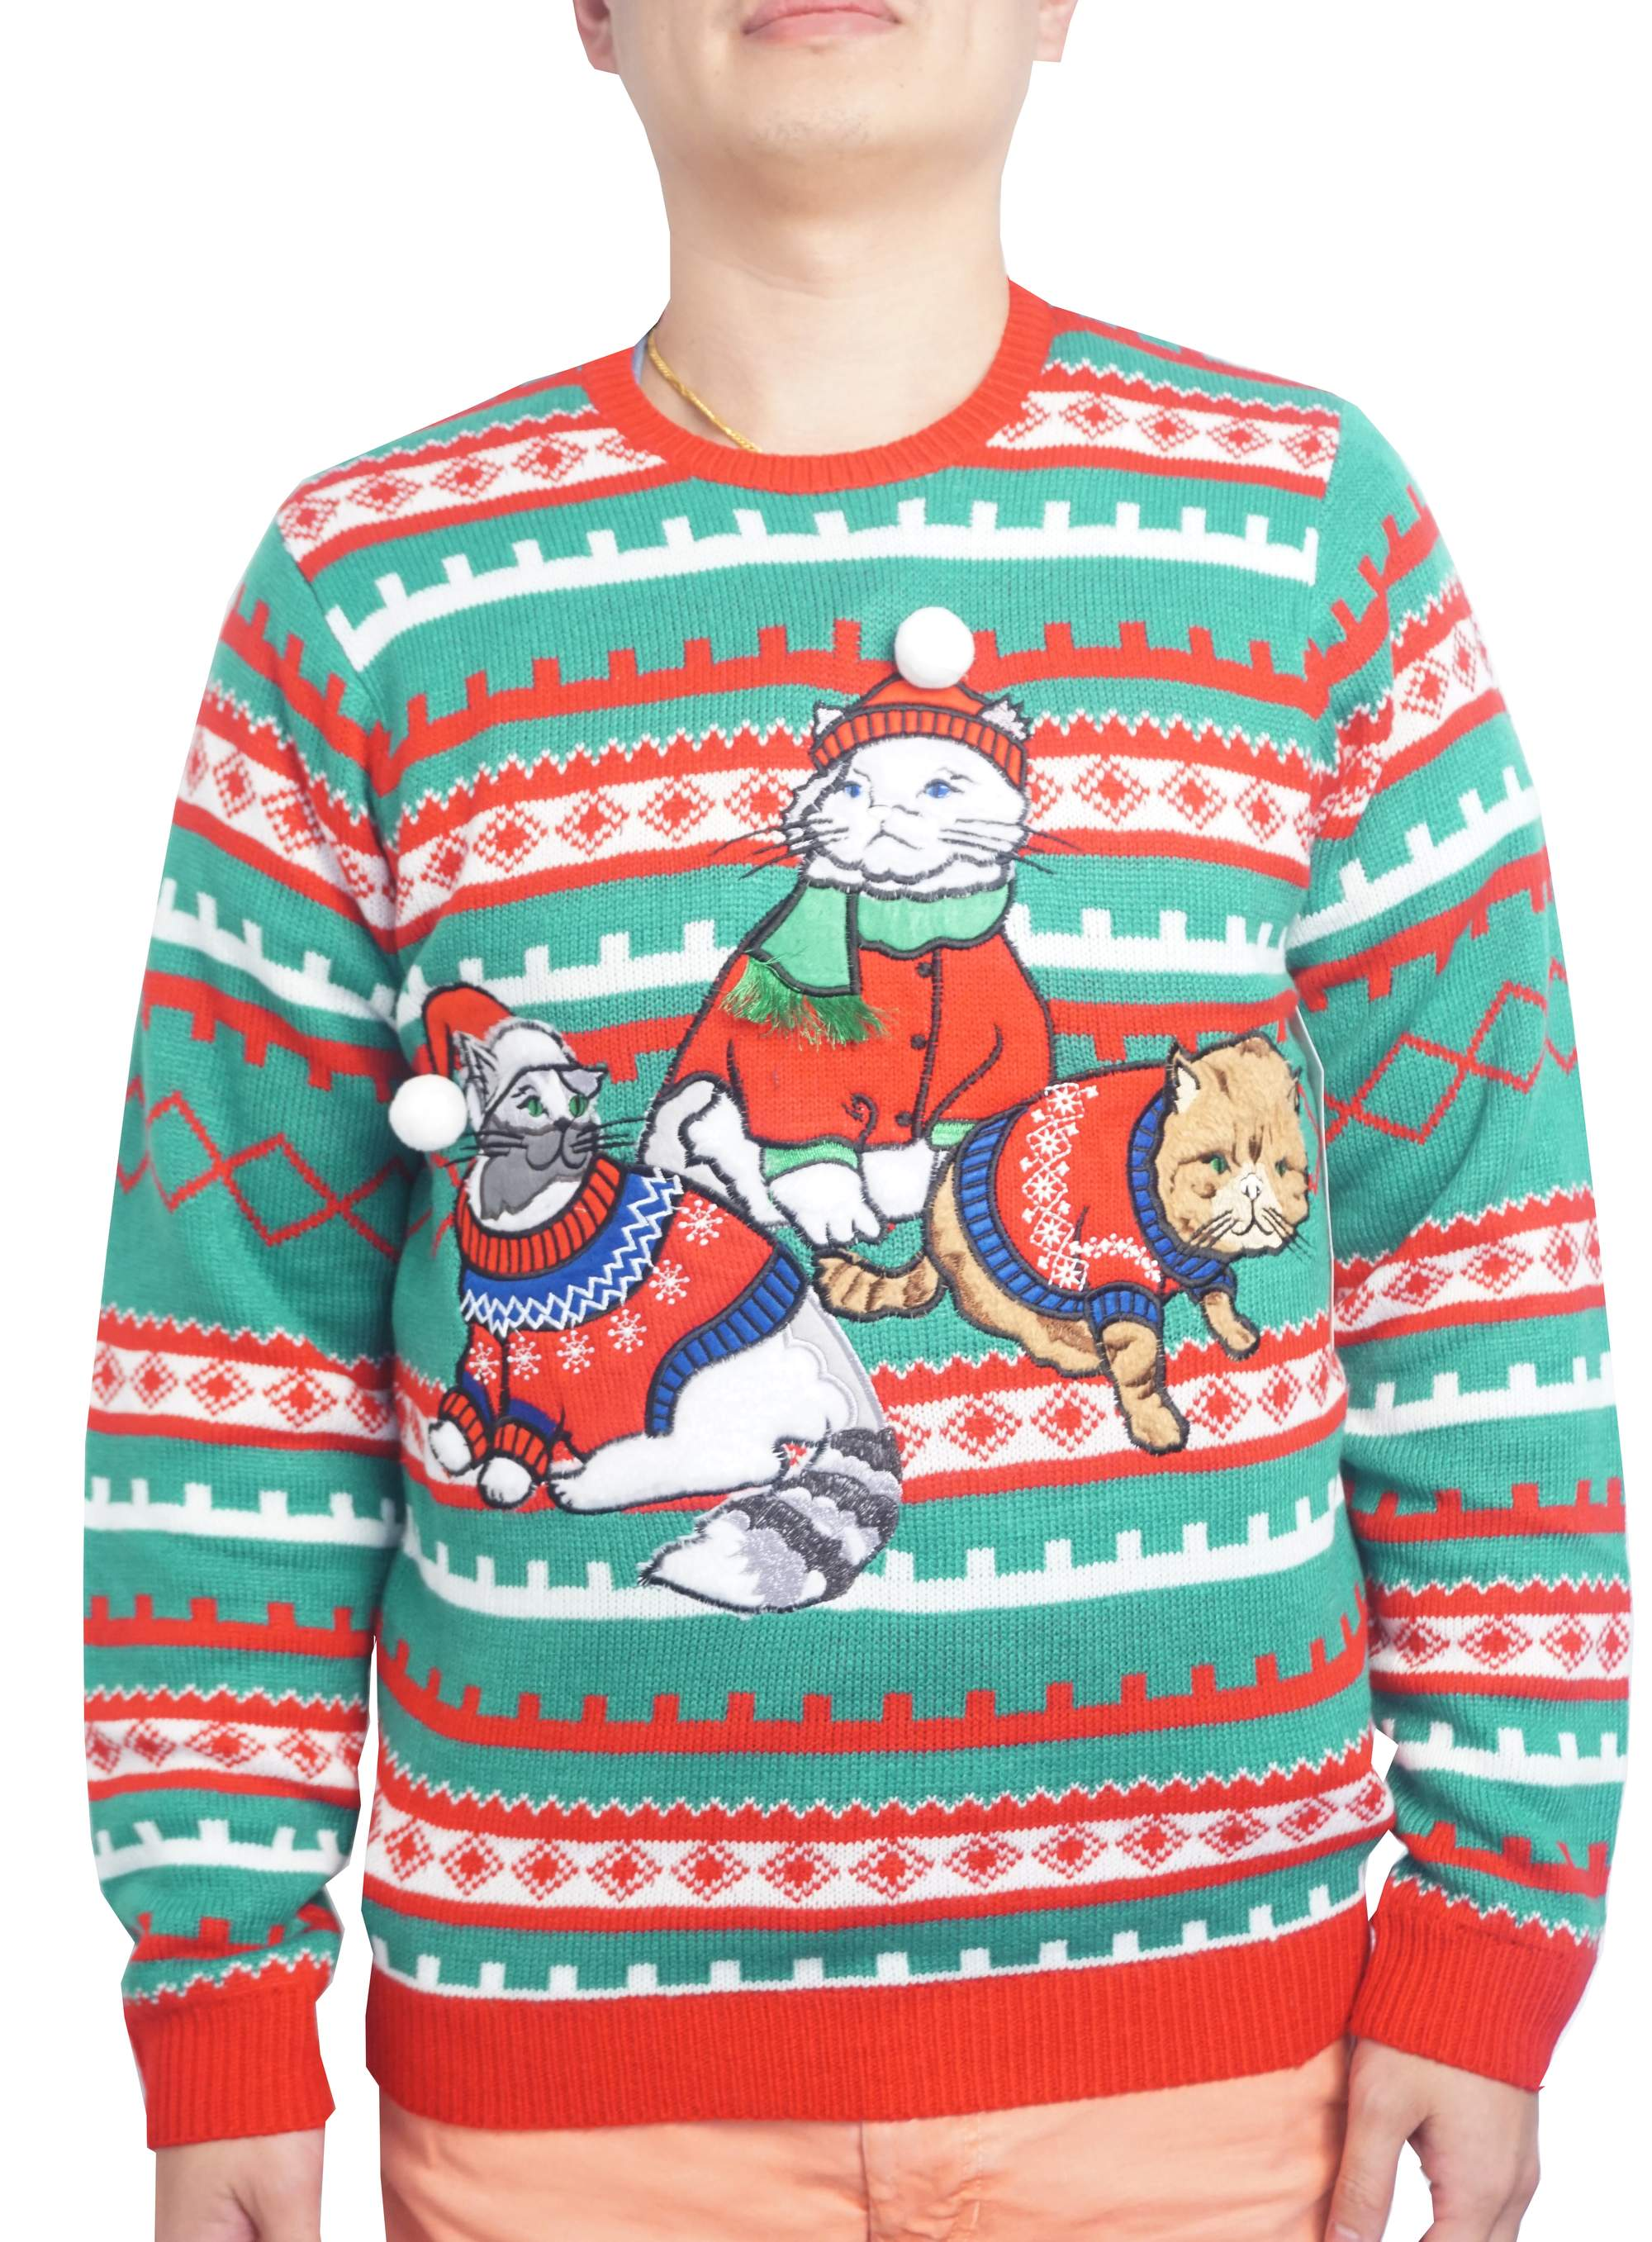 Holiday Mens Fancy Sweater Cat Ugly Christmas Sweater Up To Size